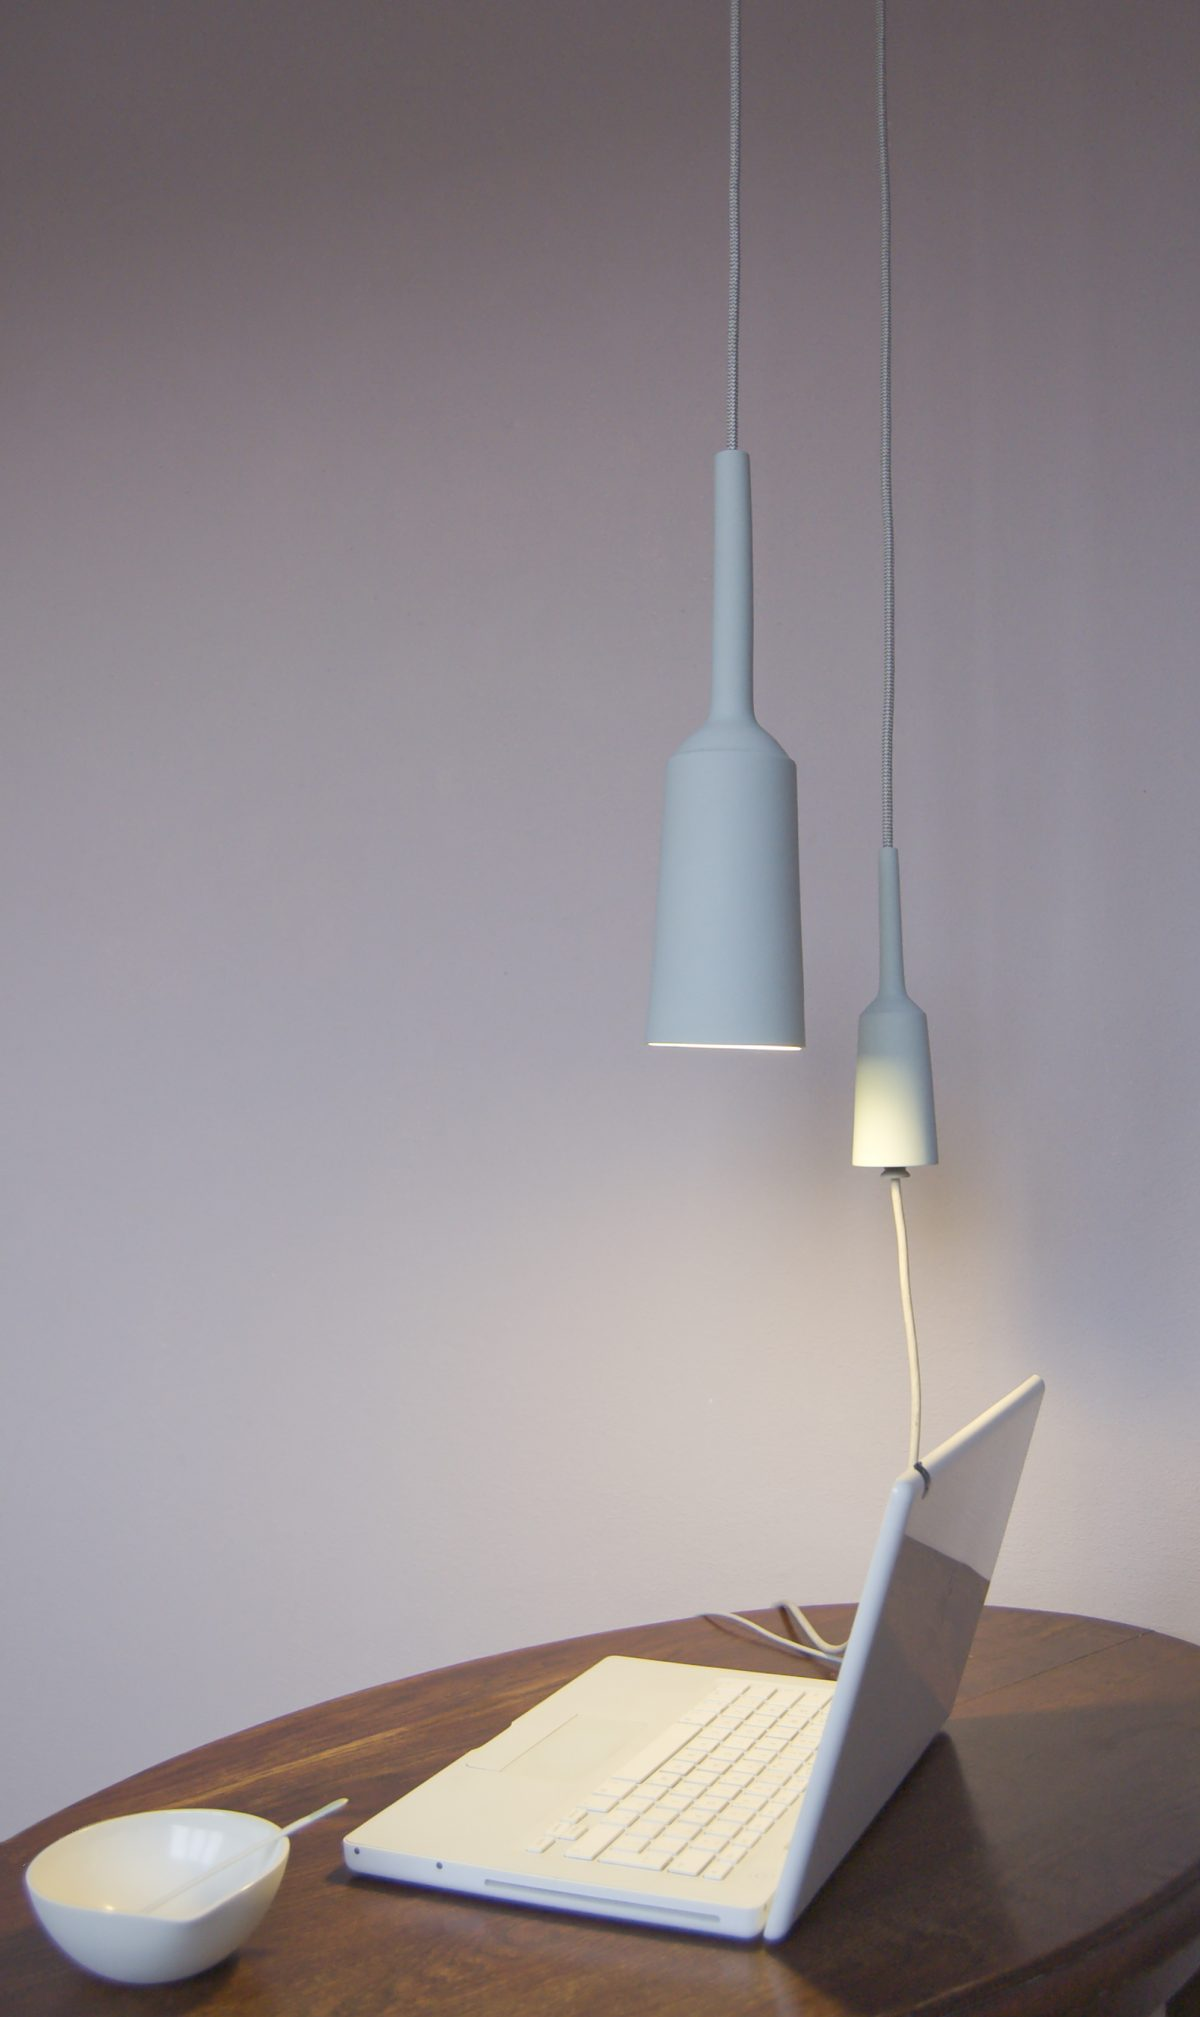 Lamp&Socket -Lotte Douwes